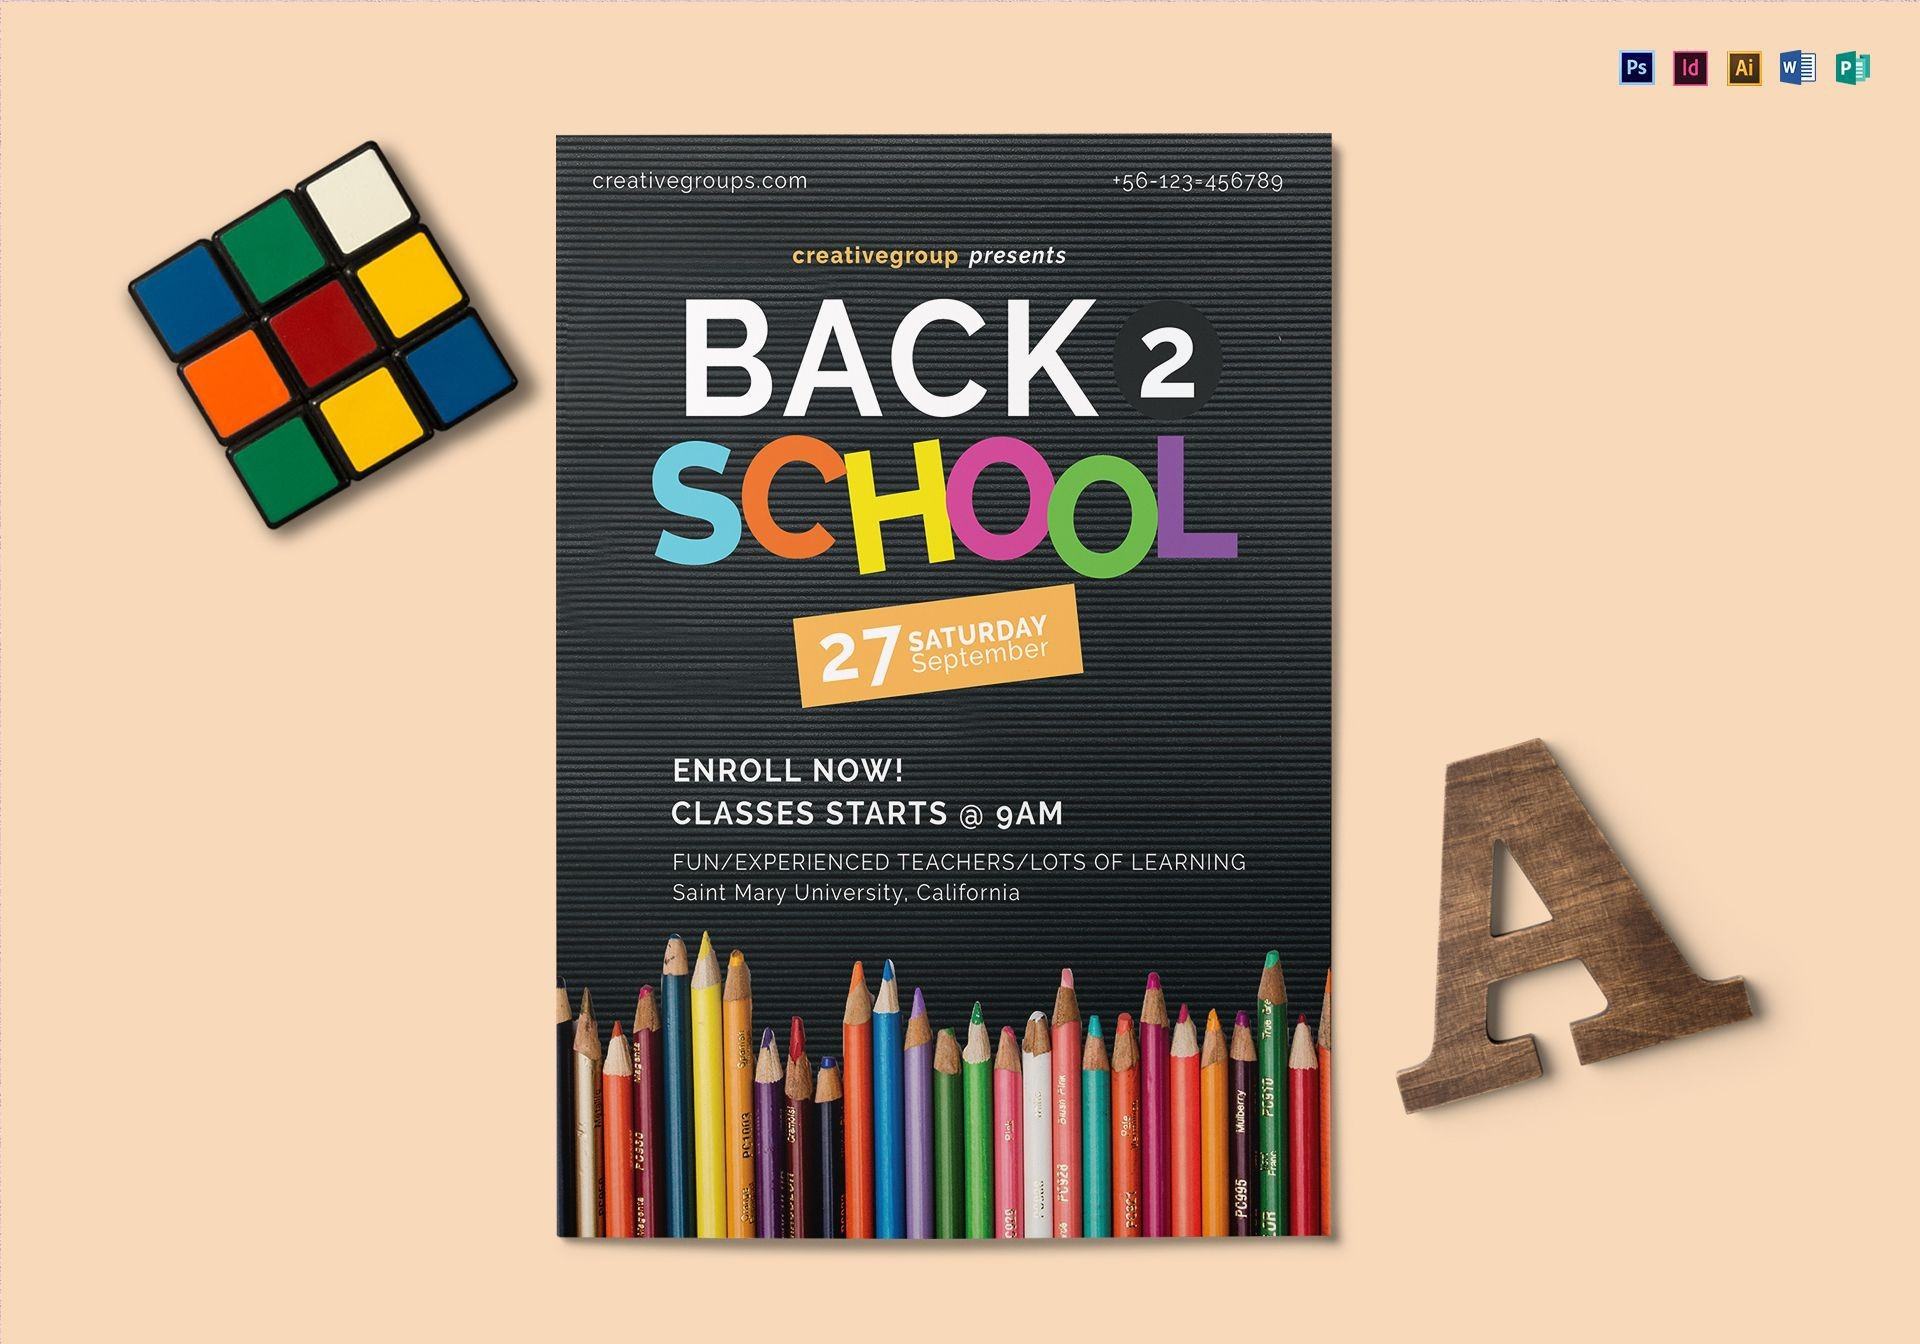 006 Outstanding Free School Flyer Template Word Photo  For Microsoft Education Back To1920